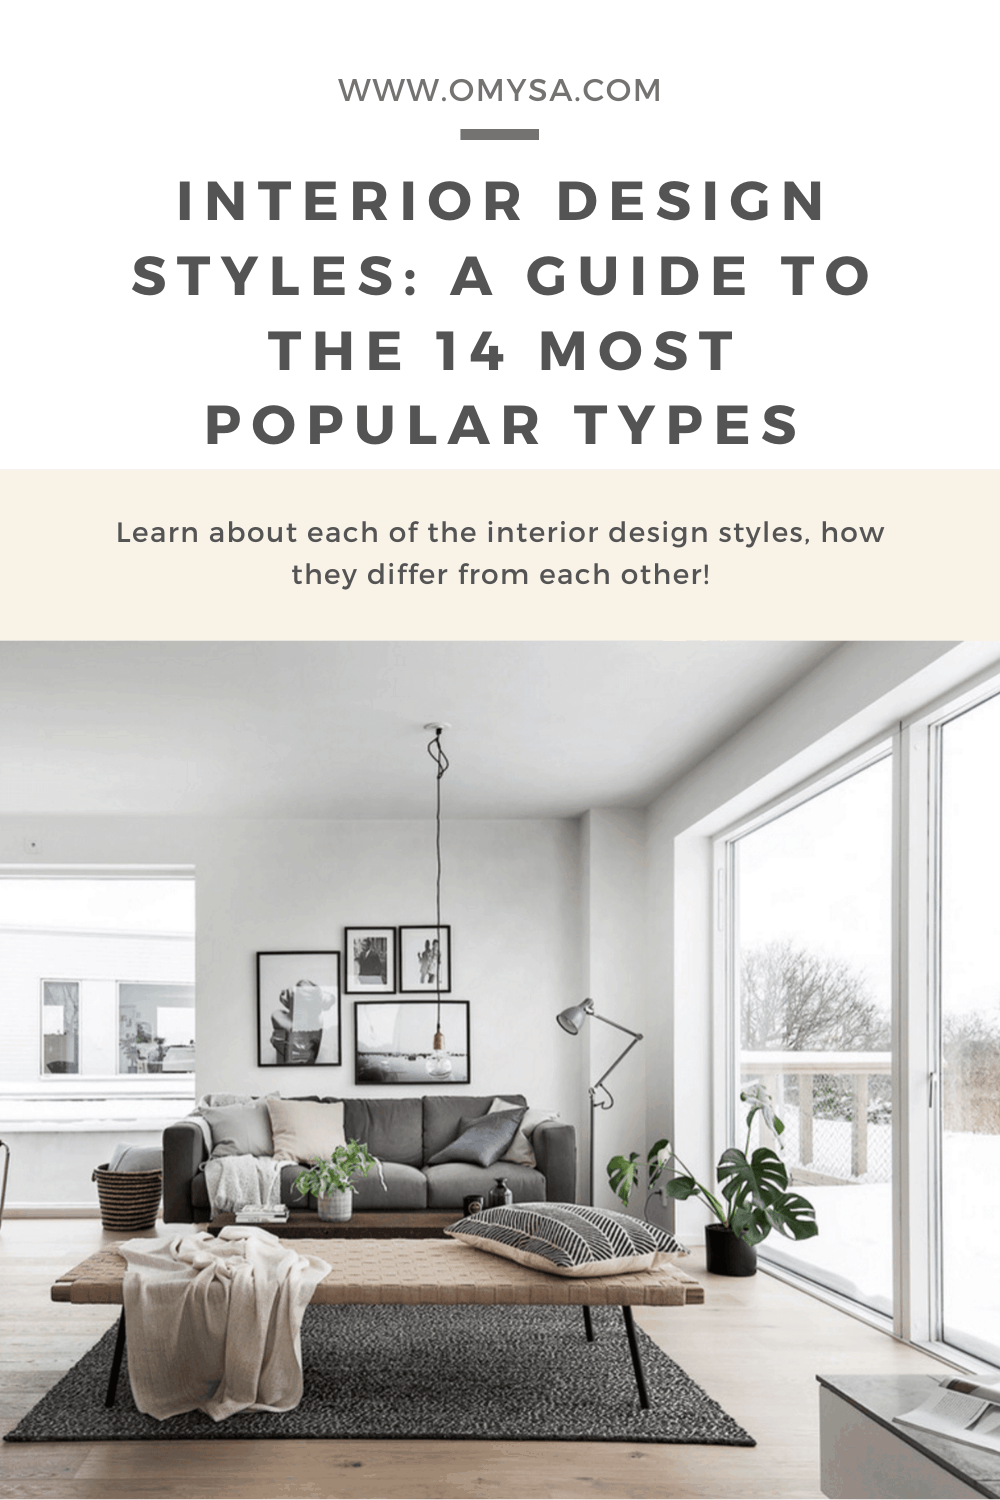 Interior Design Styles A Guide To The 14 Most Popular Types In 2020 Popular Interior Design Traditional Interior Design Interior Styles Guide